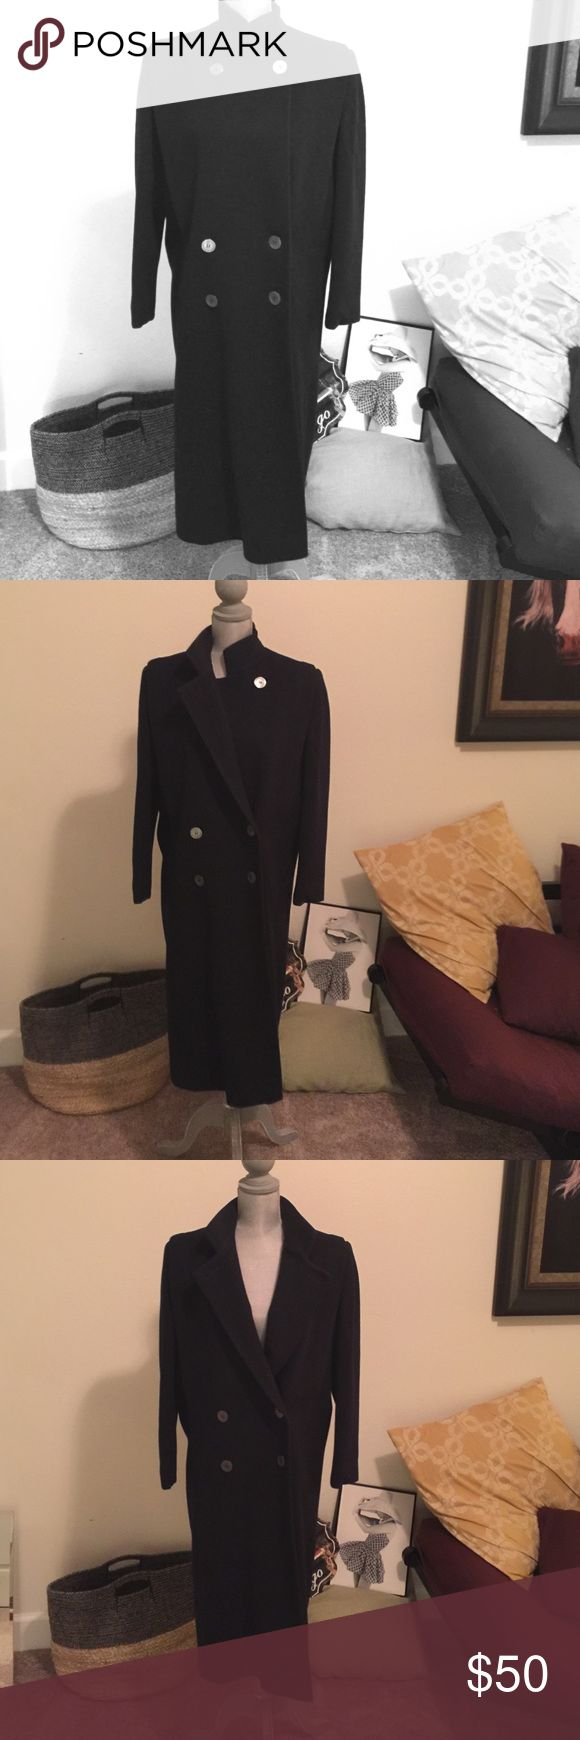 Vintage Ashley Scott petite Winter Trench Coat 100% Wool in perfect condition Ashley Scott so sophisticated trench coat. Ashley Scott Jackets & Coats Trench Coats